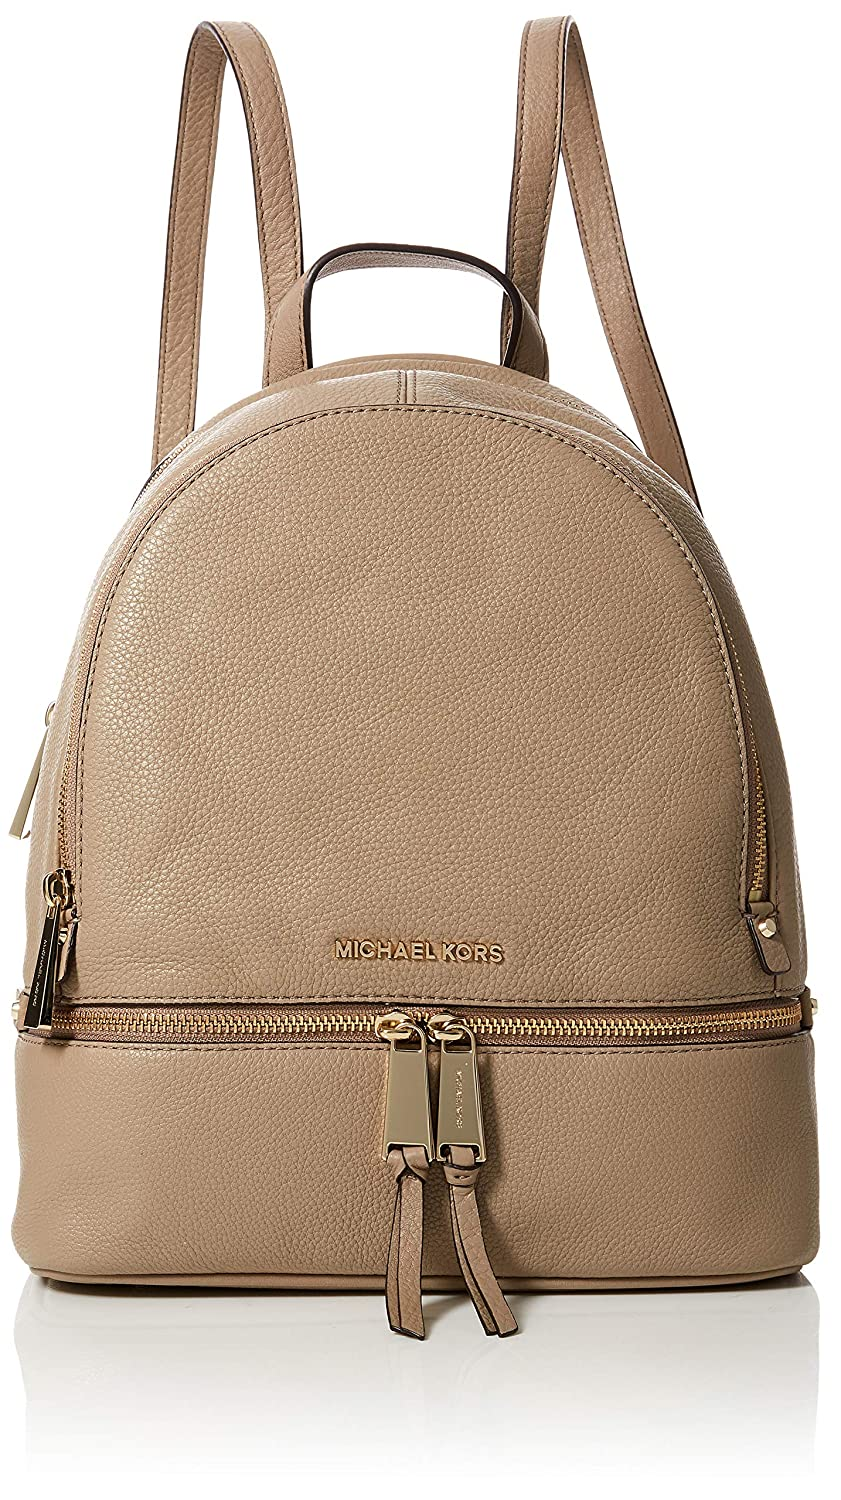 57ad7bee2dab Amazon.com  Michael Kors Womens Rhea Zip Backpack Handbag Beige (TRUFFLE)   Shoes